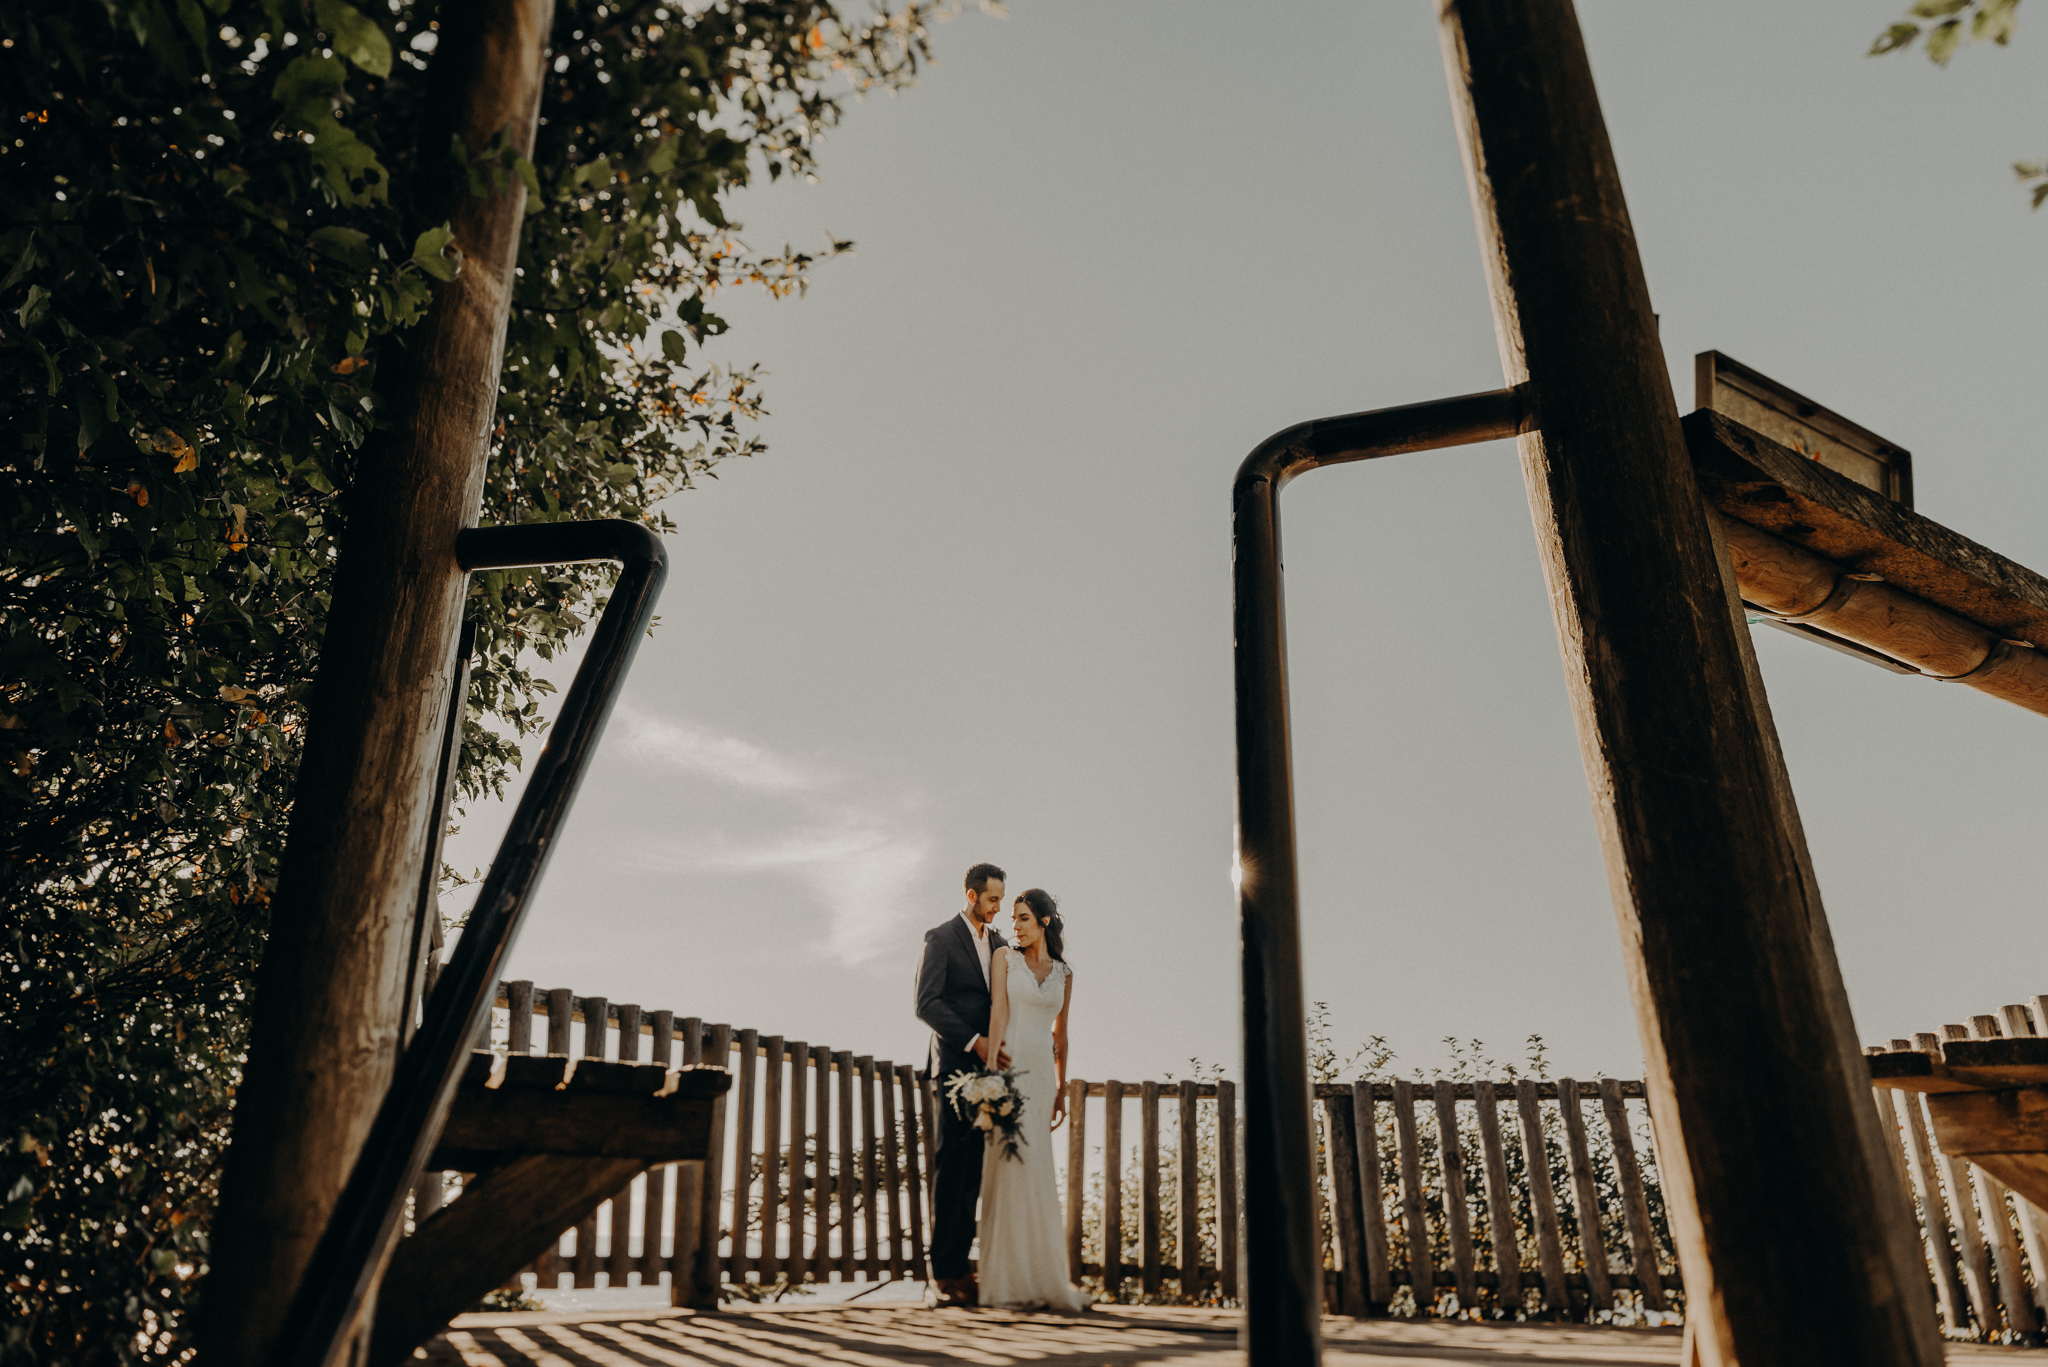 Isaiah + Taylor Photography - Cape Flattery Elopement, Olympia National Forest Wedding Photographer-070.jpg